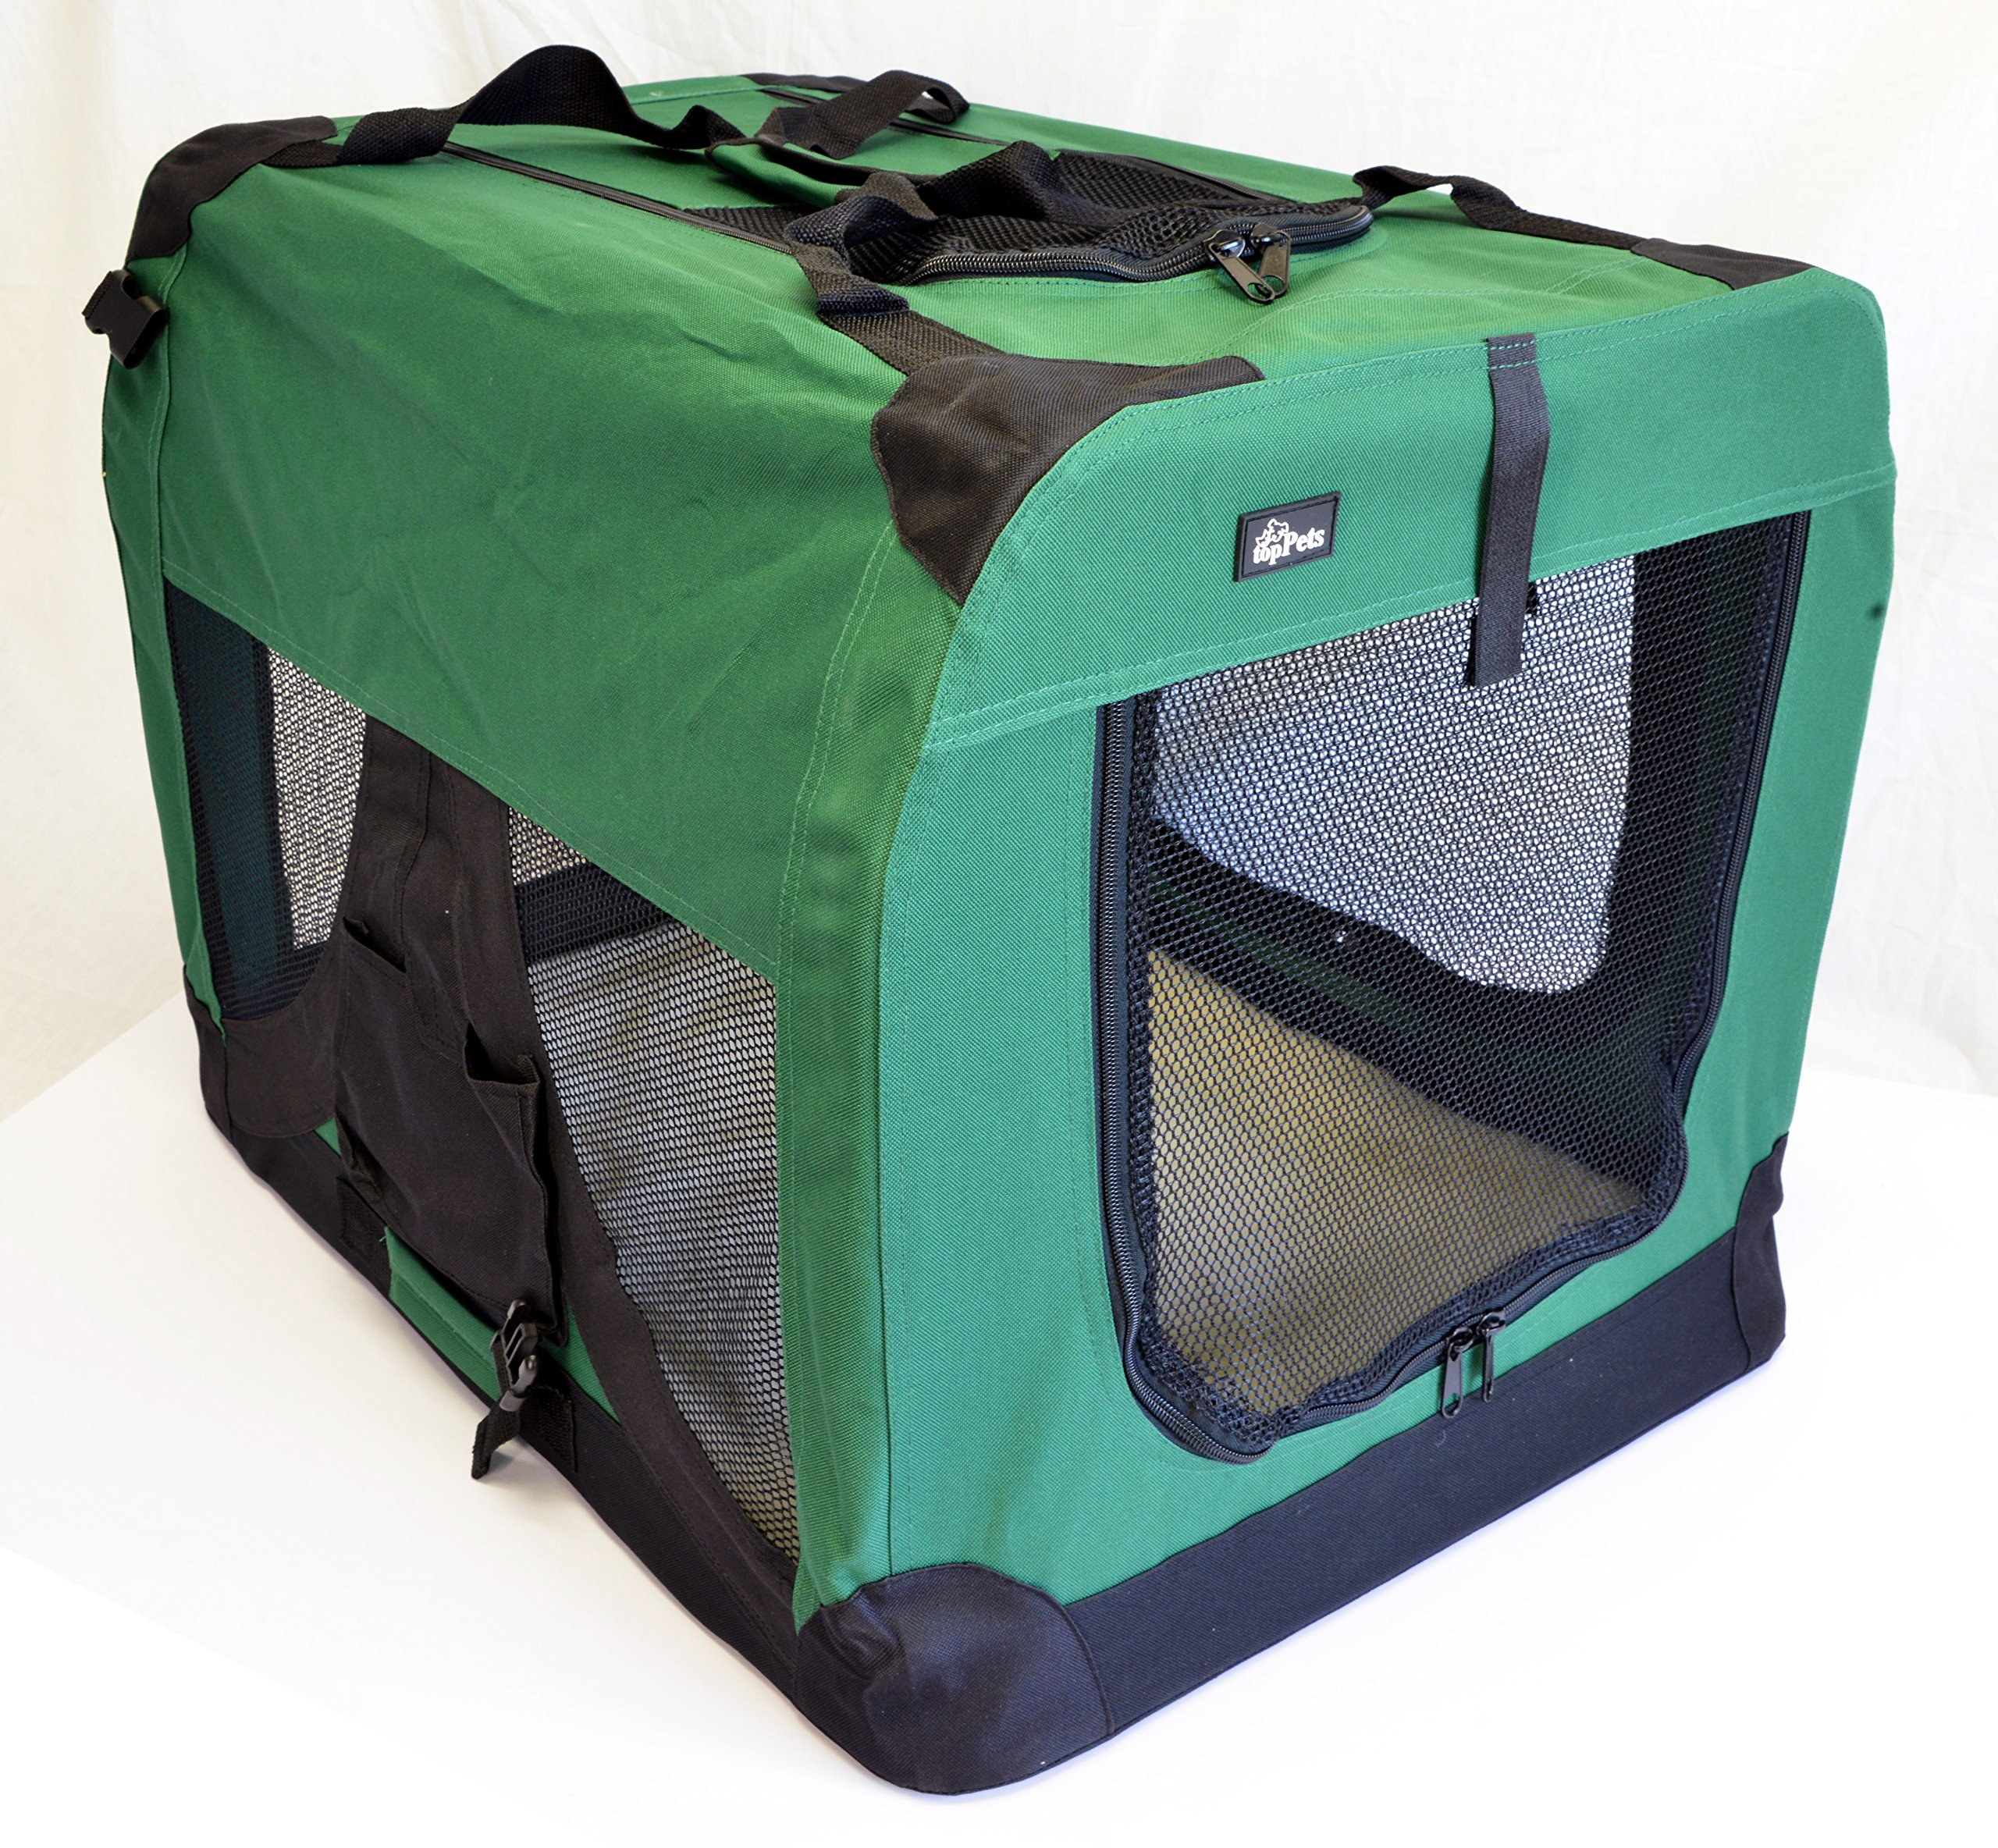 topPets Portable Soft Pet Carrier - Large: 28''x20''x20'' - Moss Green